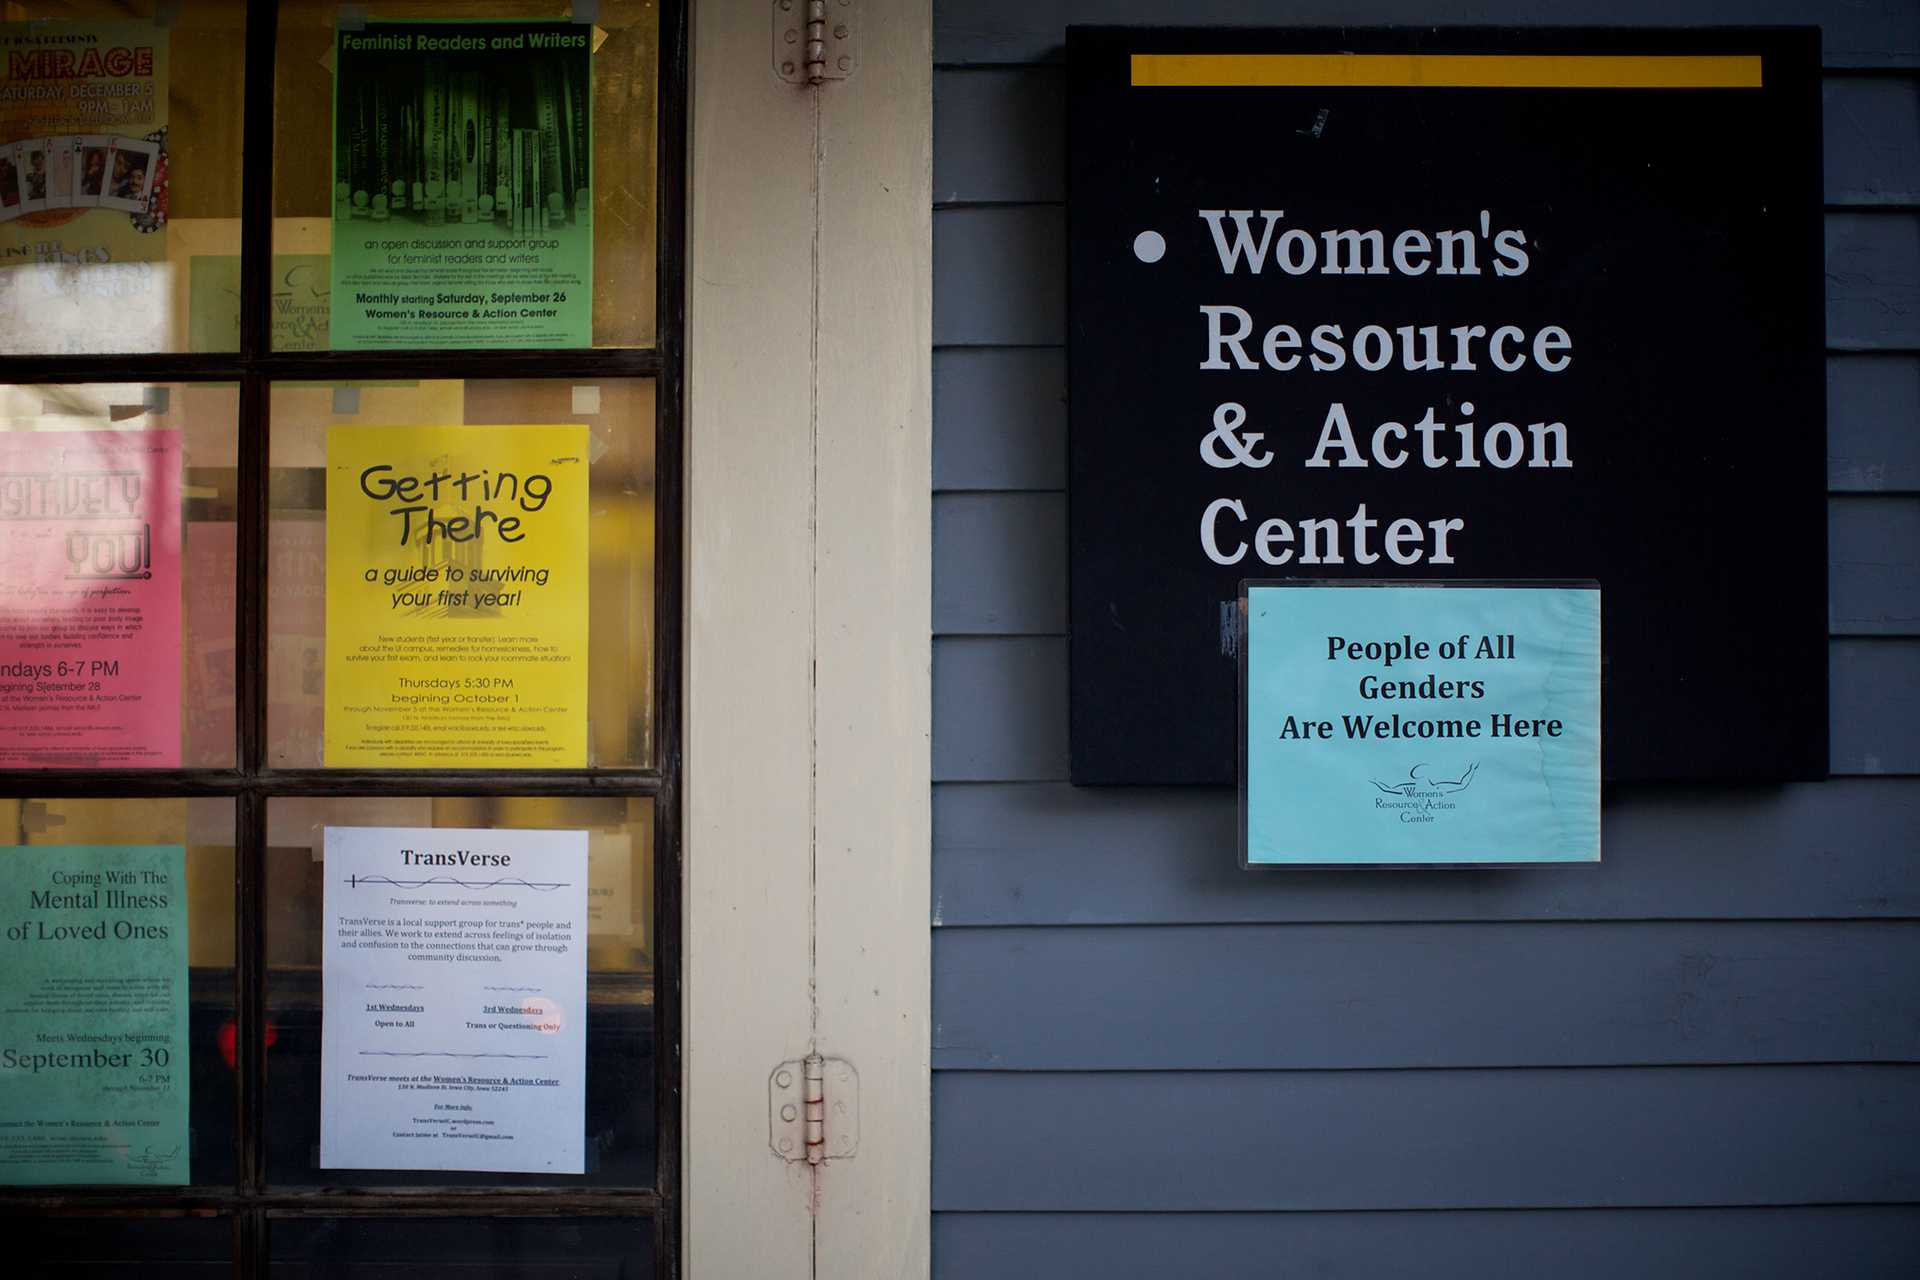 Ninety-eight years after women got the right to vote, 98 Iowa women will vie for state office